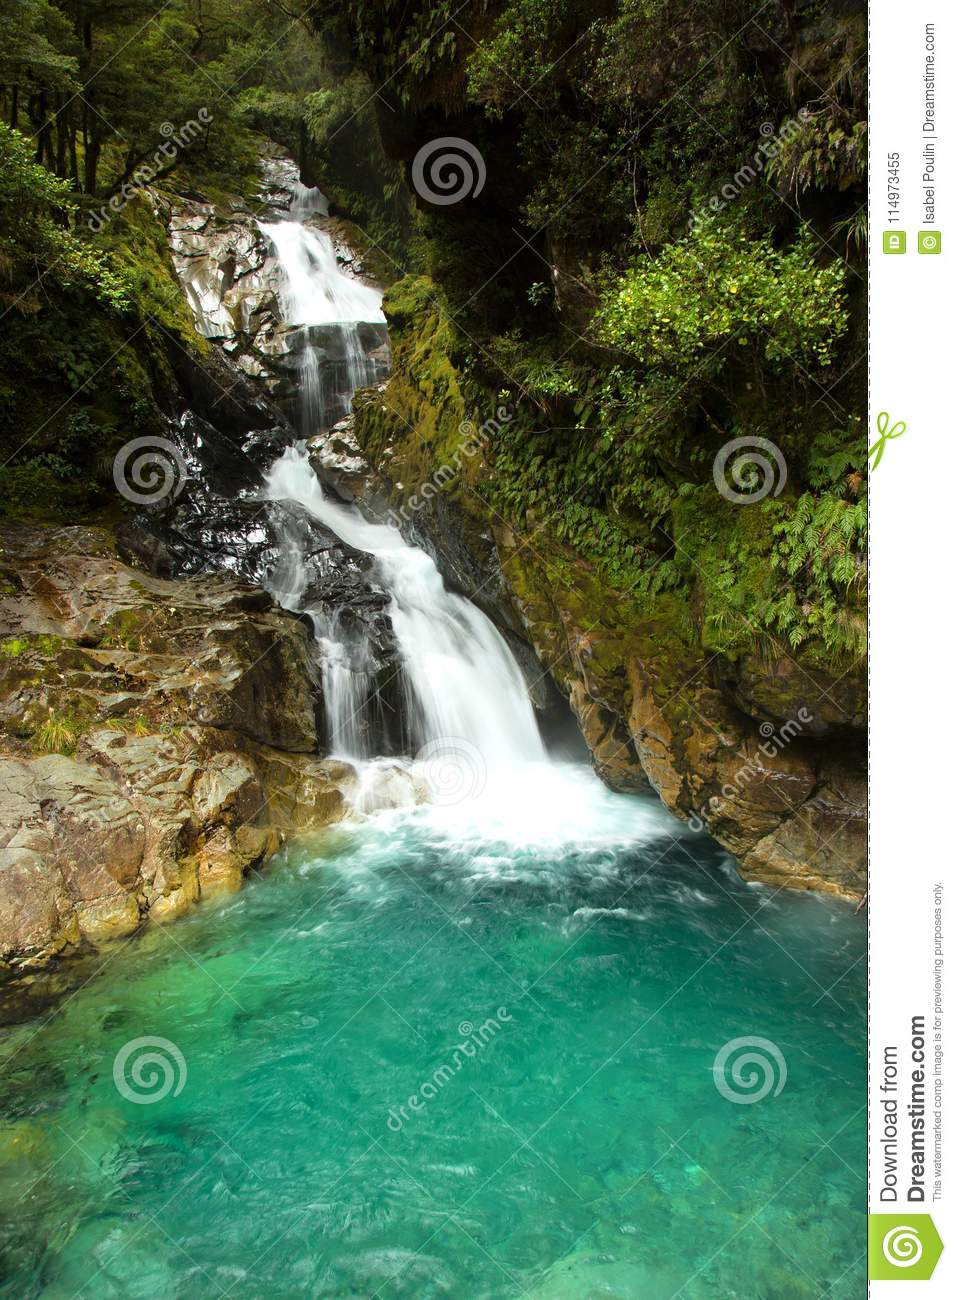 Falls Creek Waterfalls In New Zealand Stock Image Image Of Motion